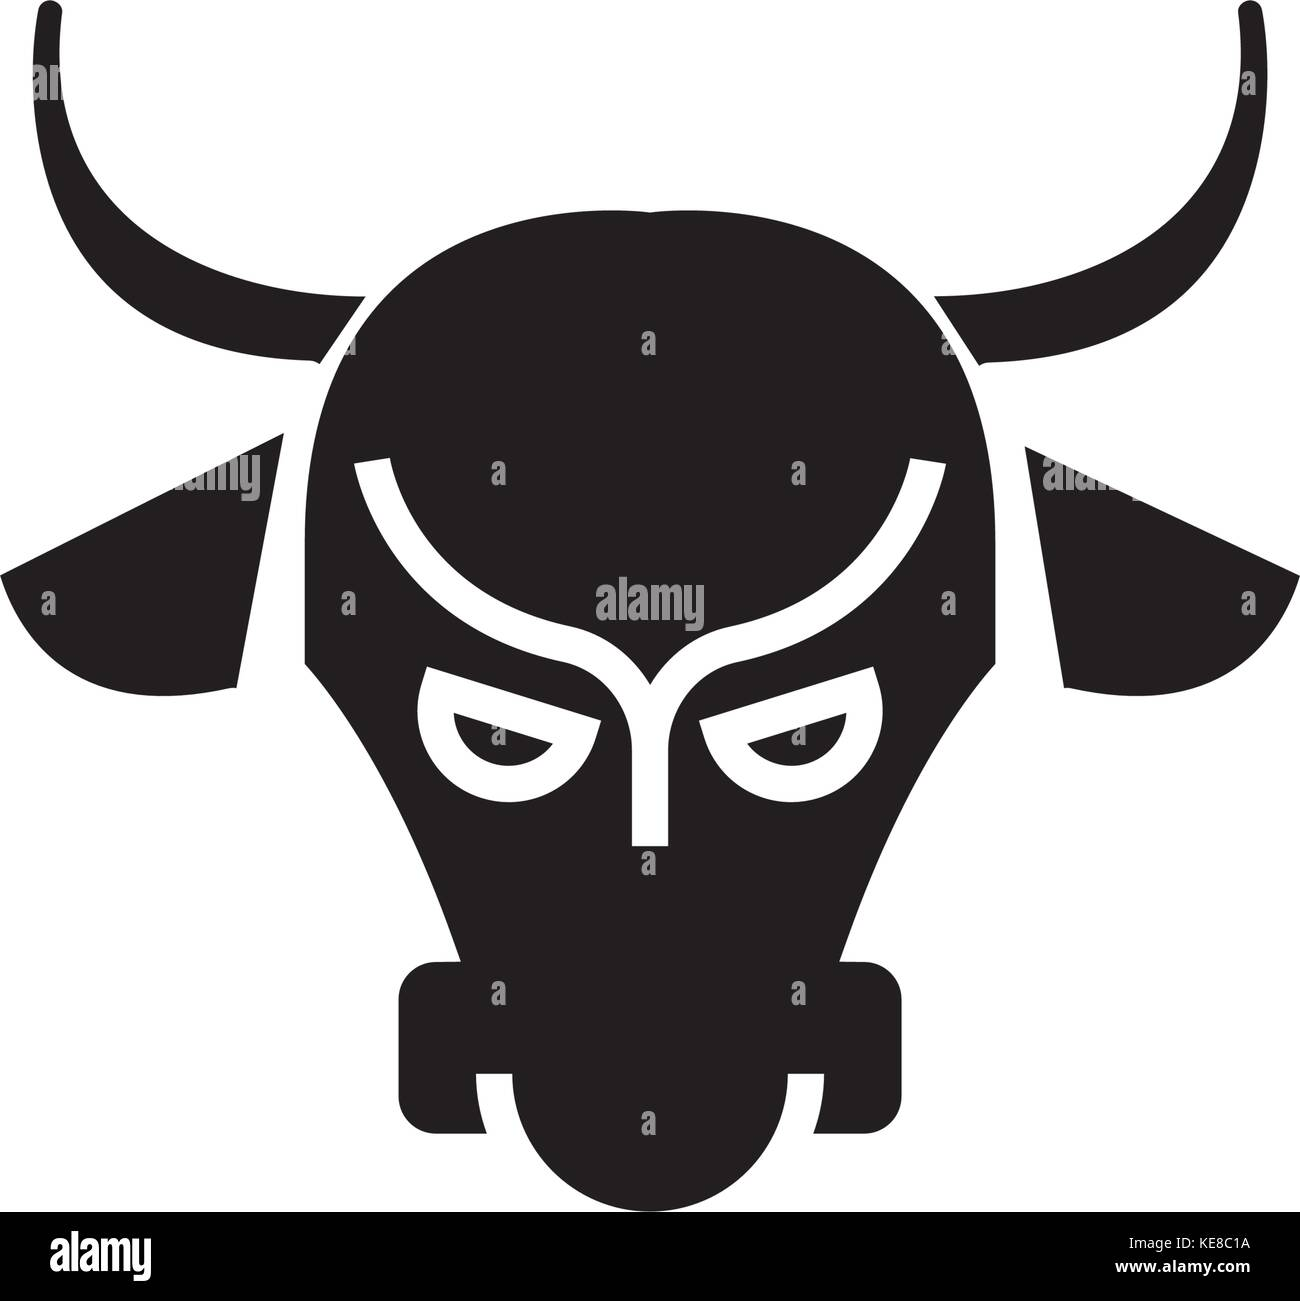 bull market - stock market - bullish icon, vector illustration, black sign on isolated background - Stock Image